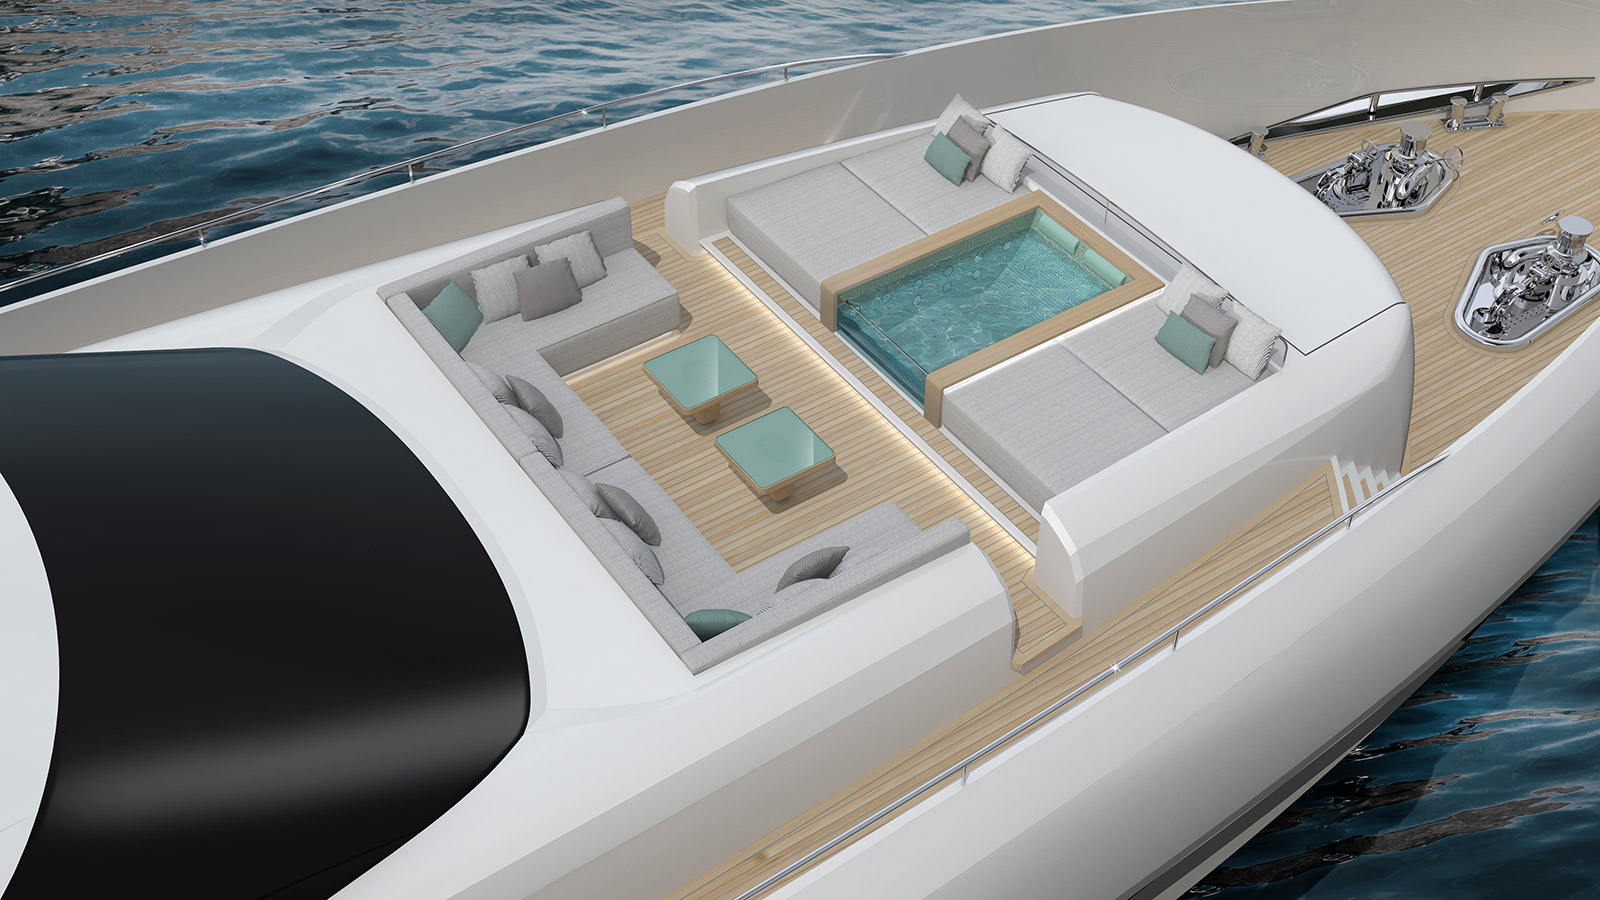 the-foredeck-layout-of-the-team-for-design-Enrico-Gobbi-yacht-concept-t42